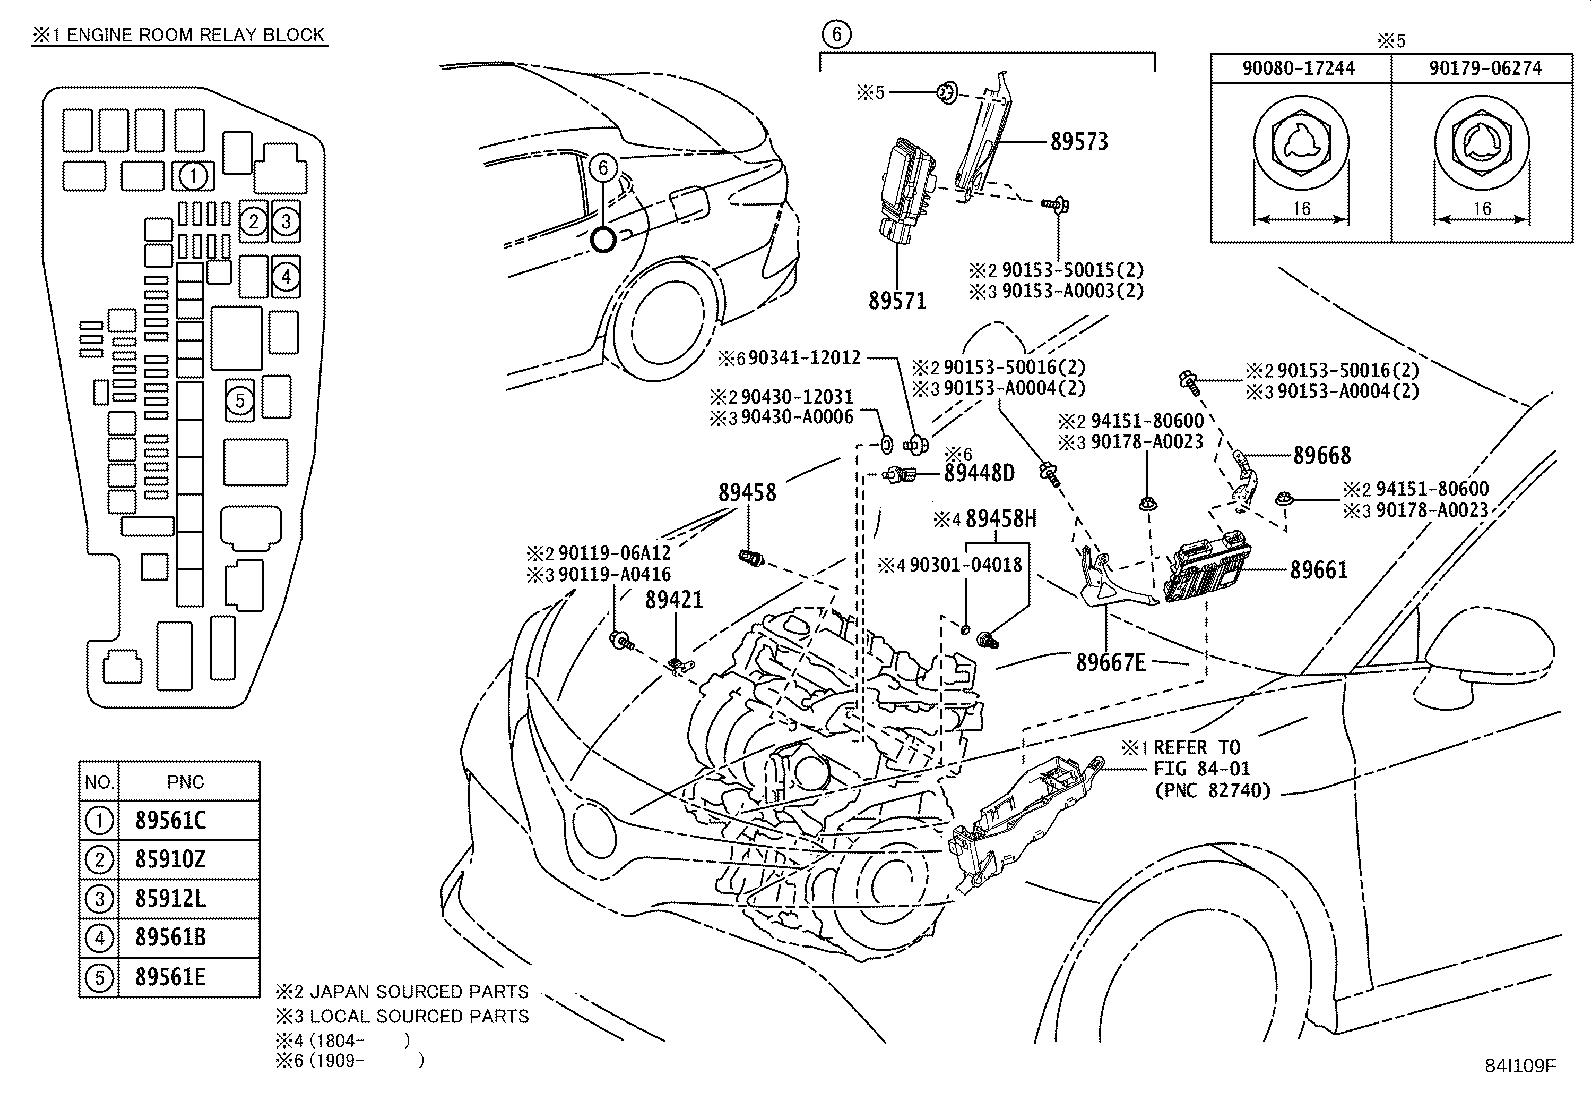 Toyota Camry Computer Engine Con Electrical